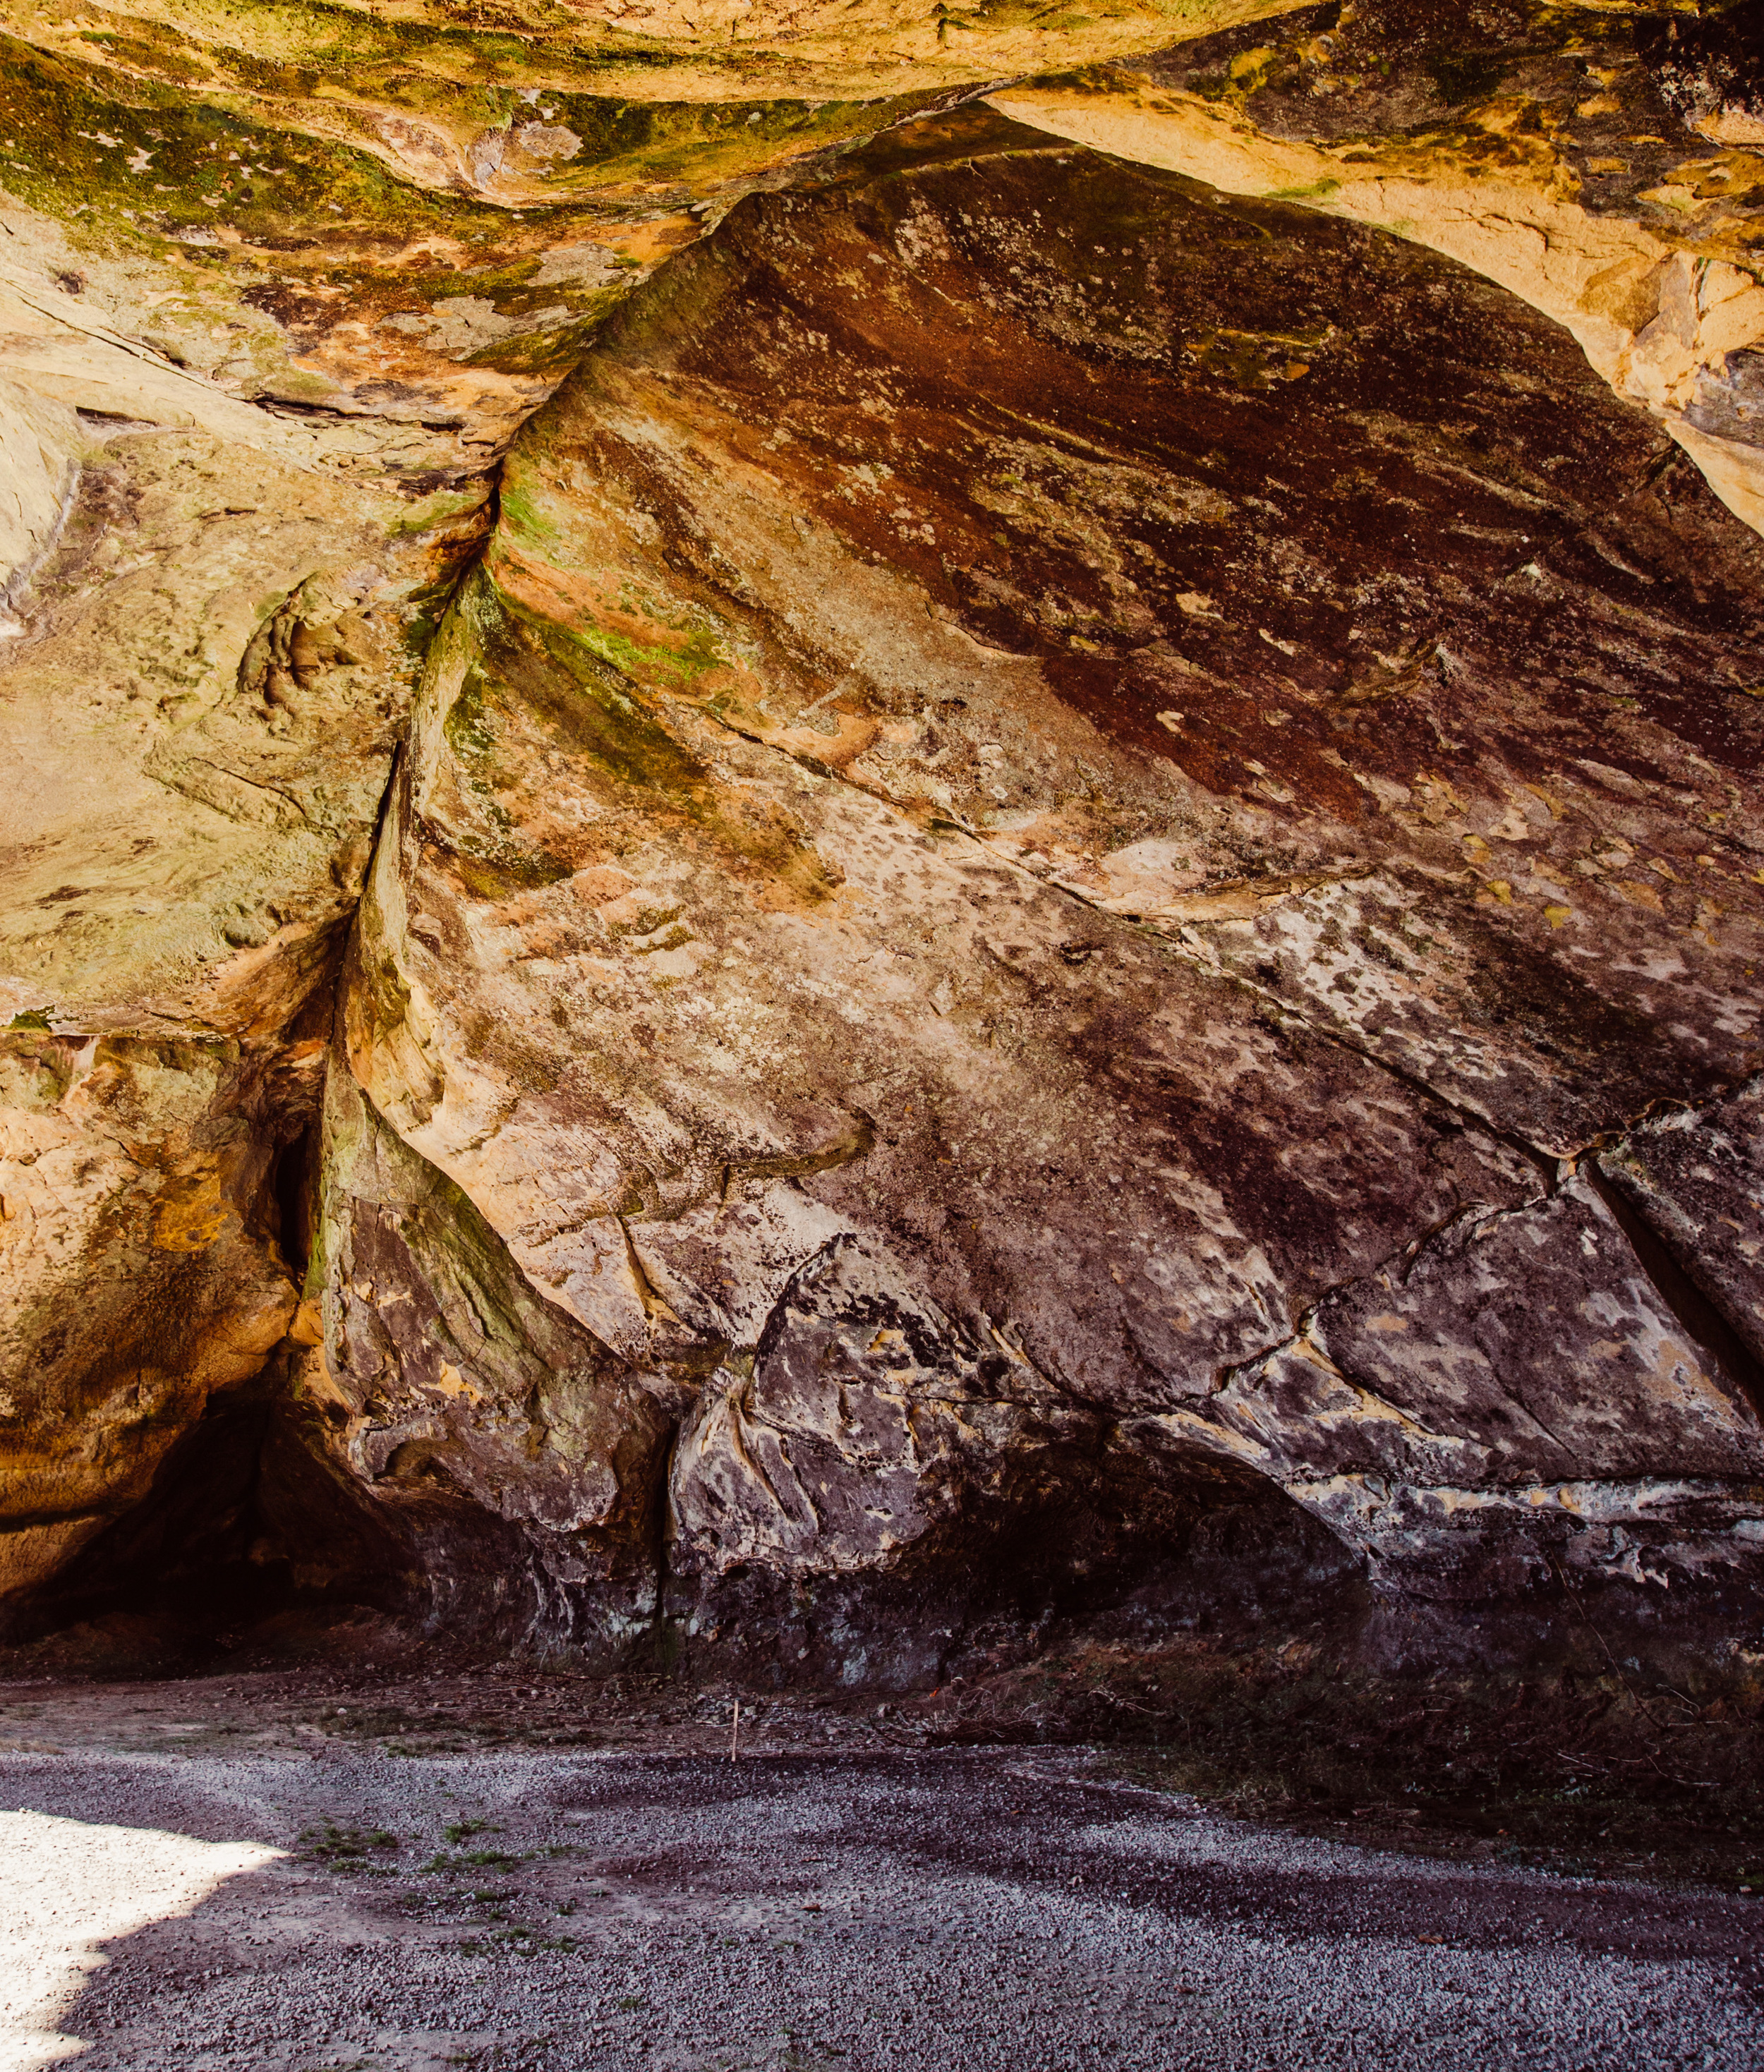 The Indian Rock Cave in Fairfield Bay is one of Arkansas' most awe-inspiring photo opportunities.